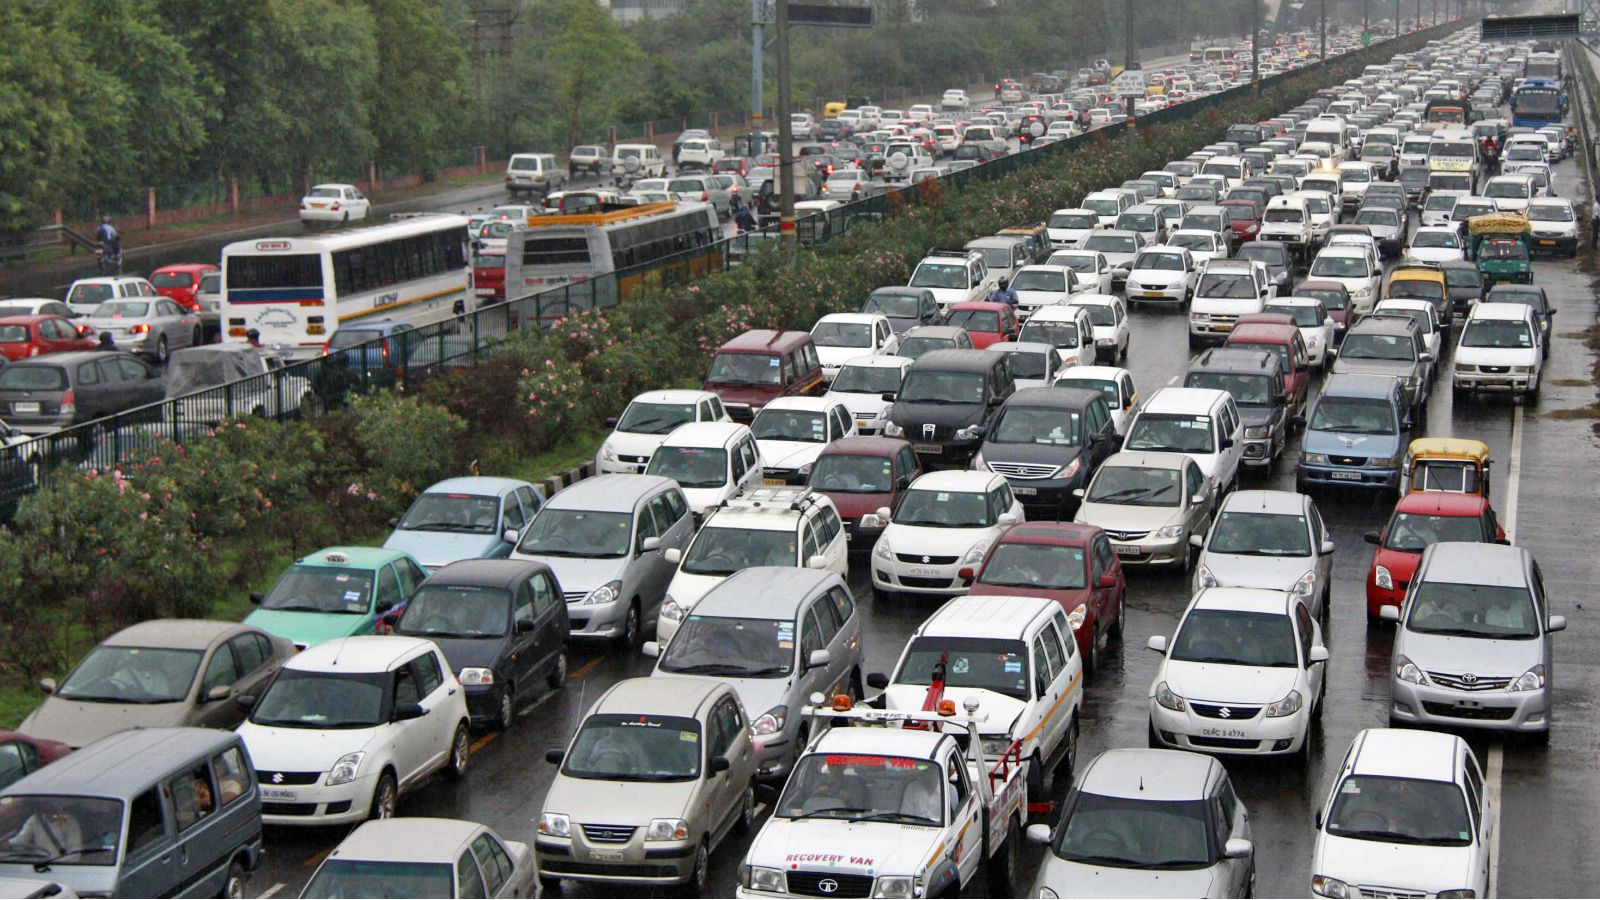 Heavy traffic moves along a busy road as it rains during a power-cut at the toll-gates at Gurgaon on the outskirts of New Delhi July 31, 2012. Grid failure hit India for a second day on Tuesday, cutting power to hundreds of millions of people in the populous northern and eastern states including the capital Delhi and major cities such as Kolkata.